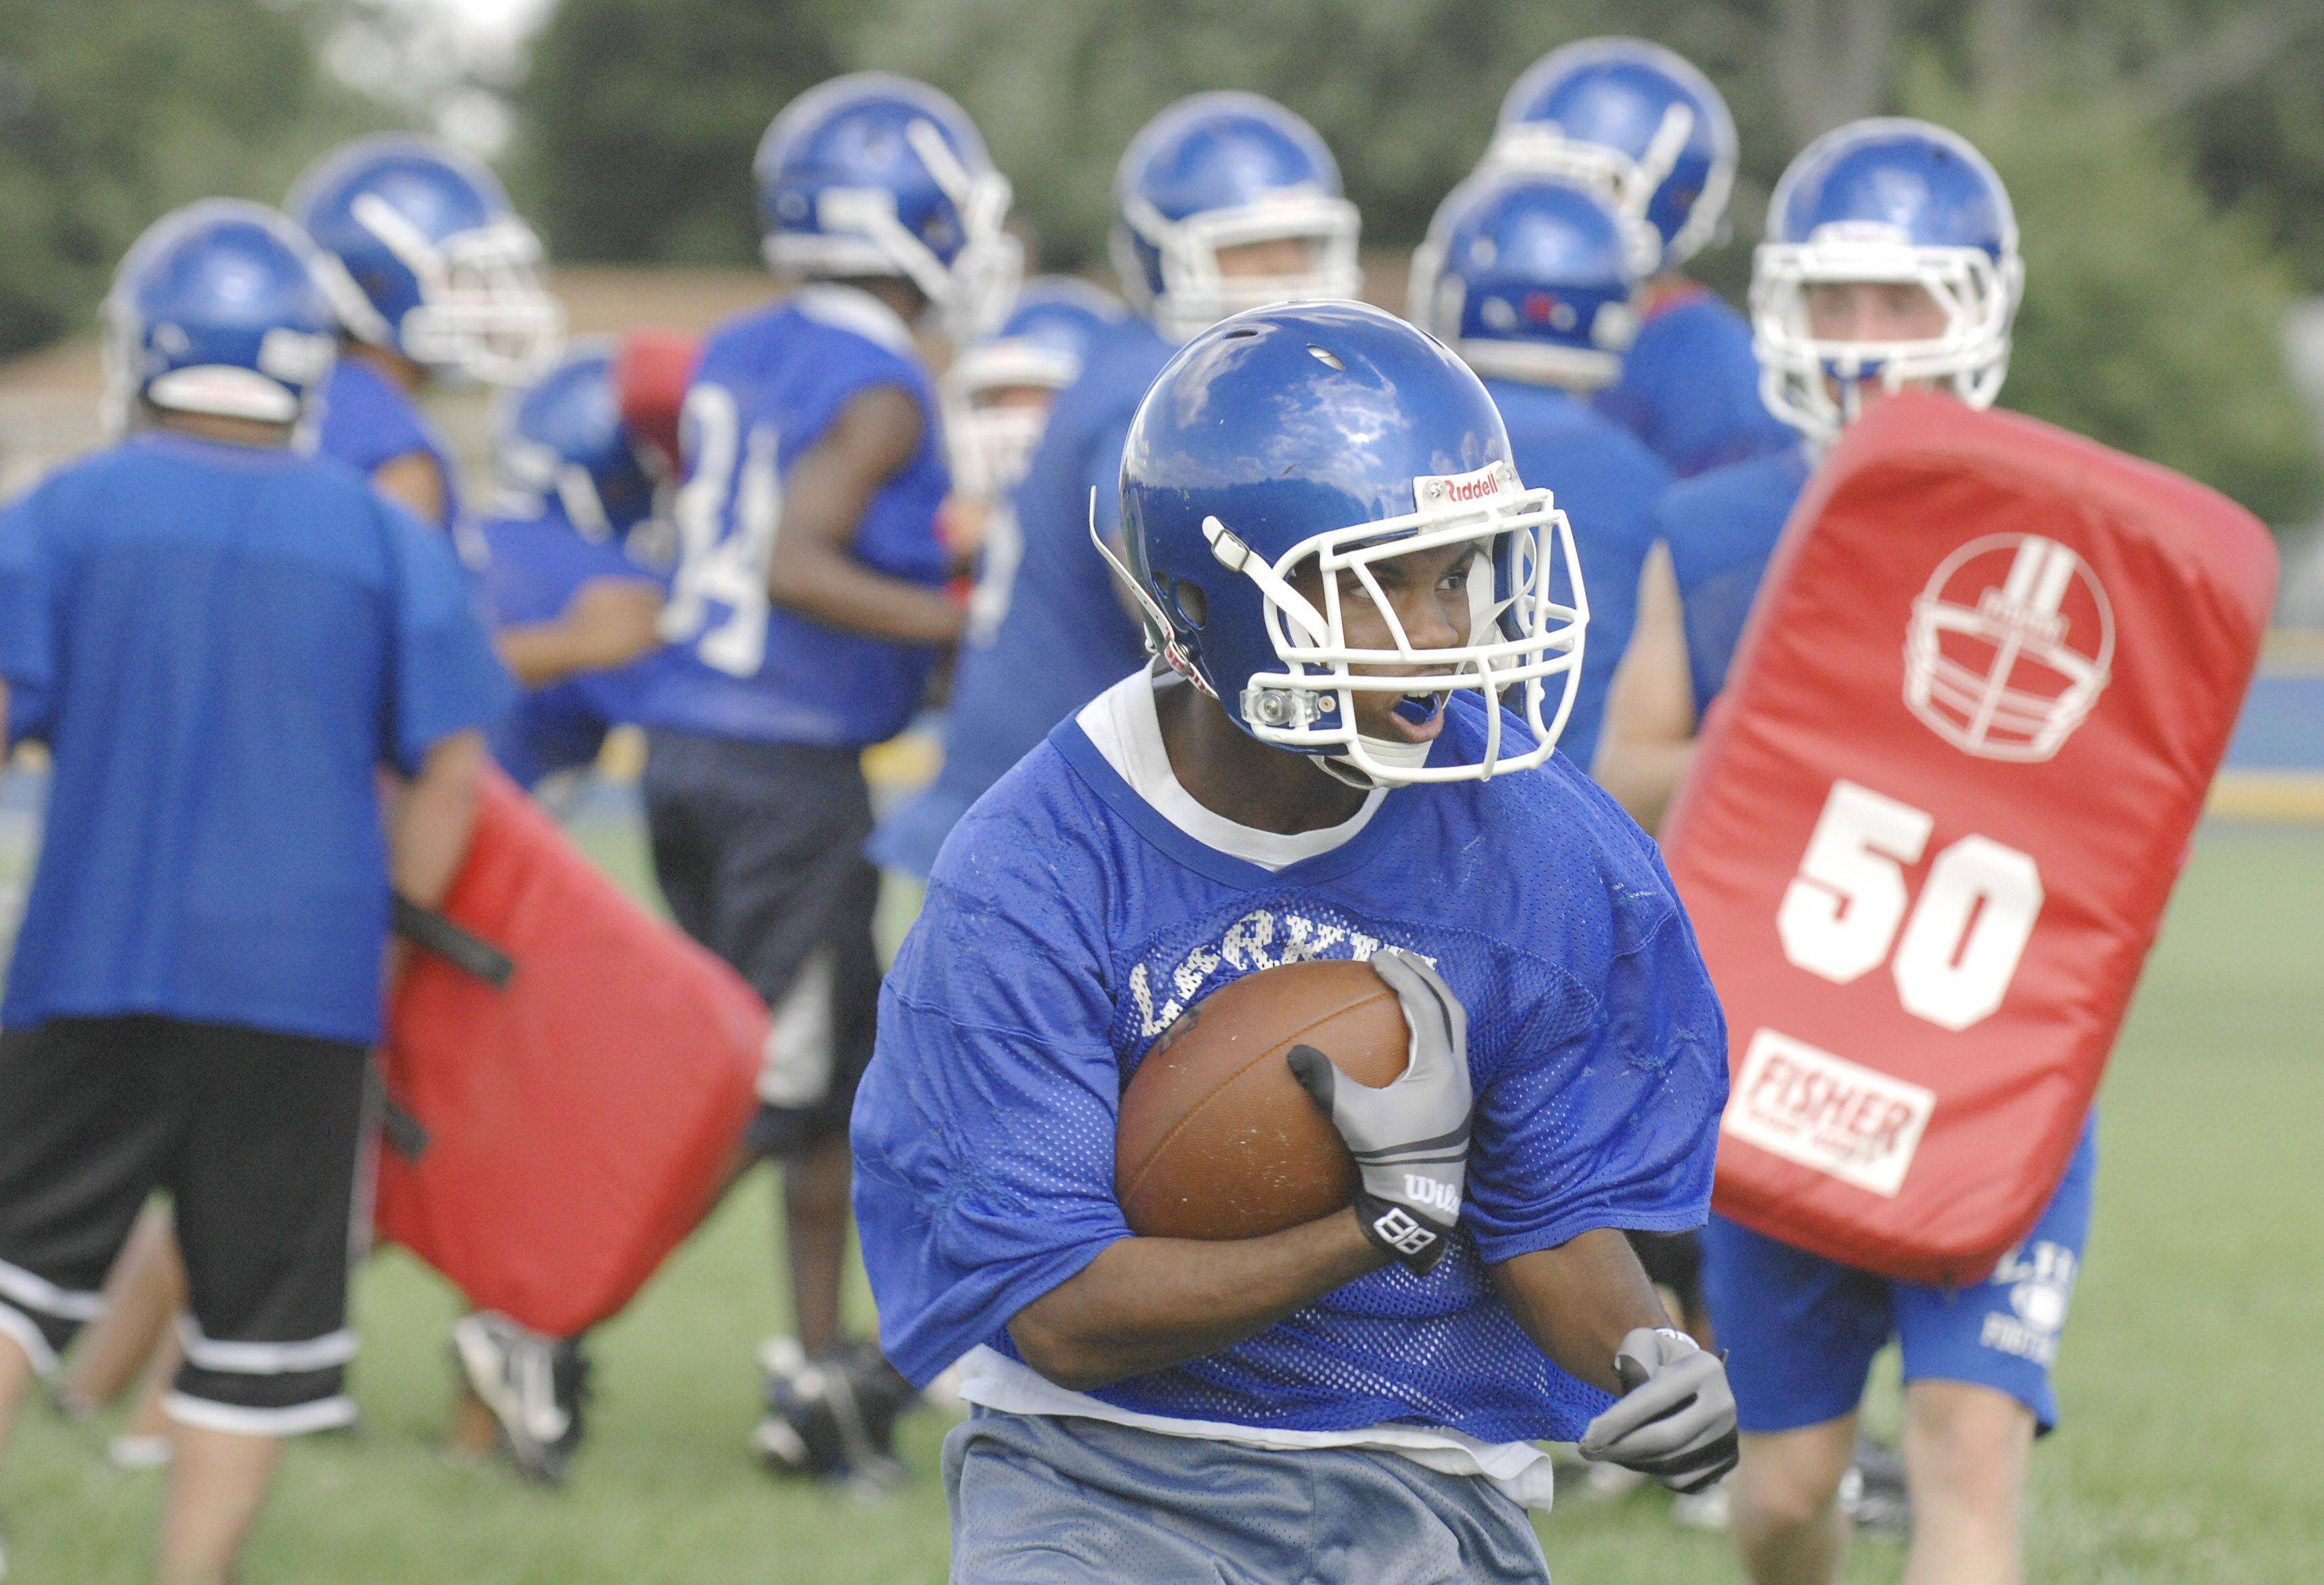 Keiren McKenzie dodges the defense in a drill during Larkin High School's varsity football practice on Wednesday, August 10.